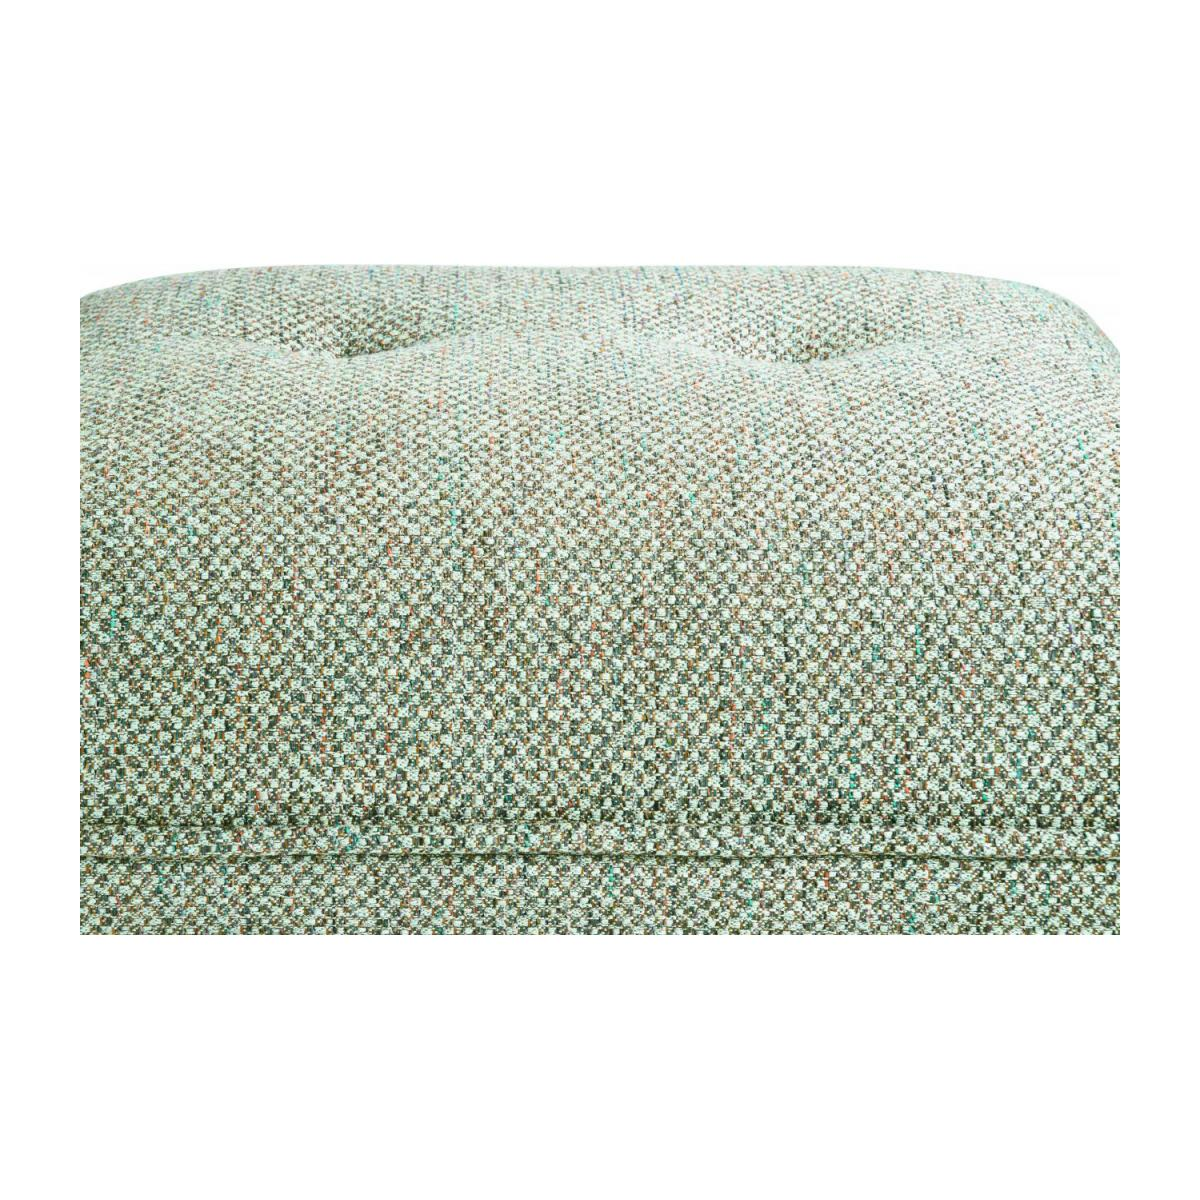 Footstool in Bellagio fabric, organic green and dark legs n°6